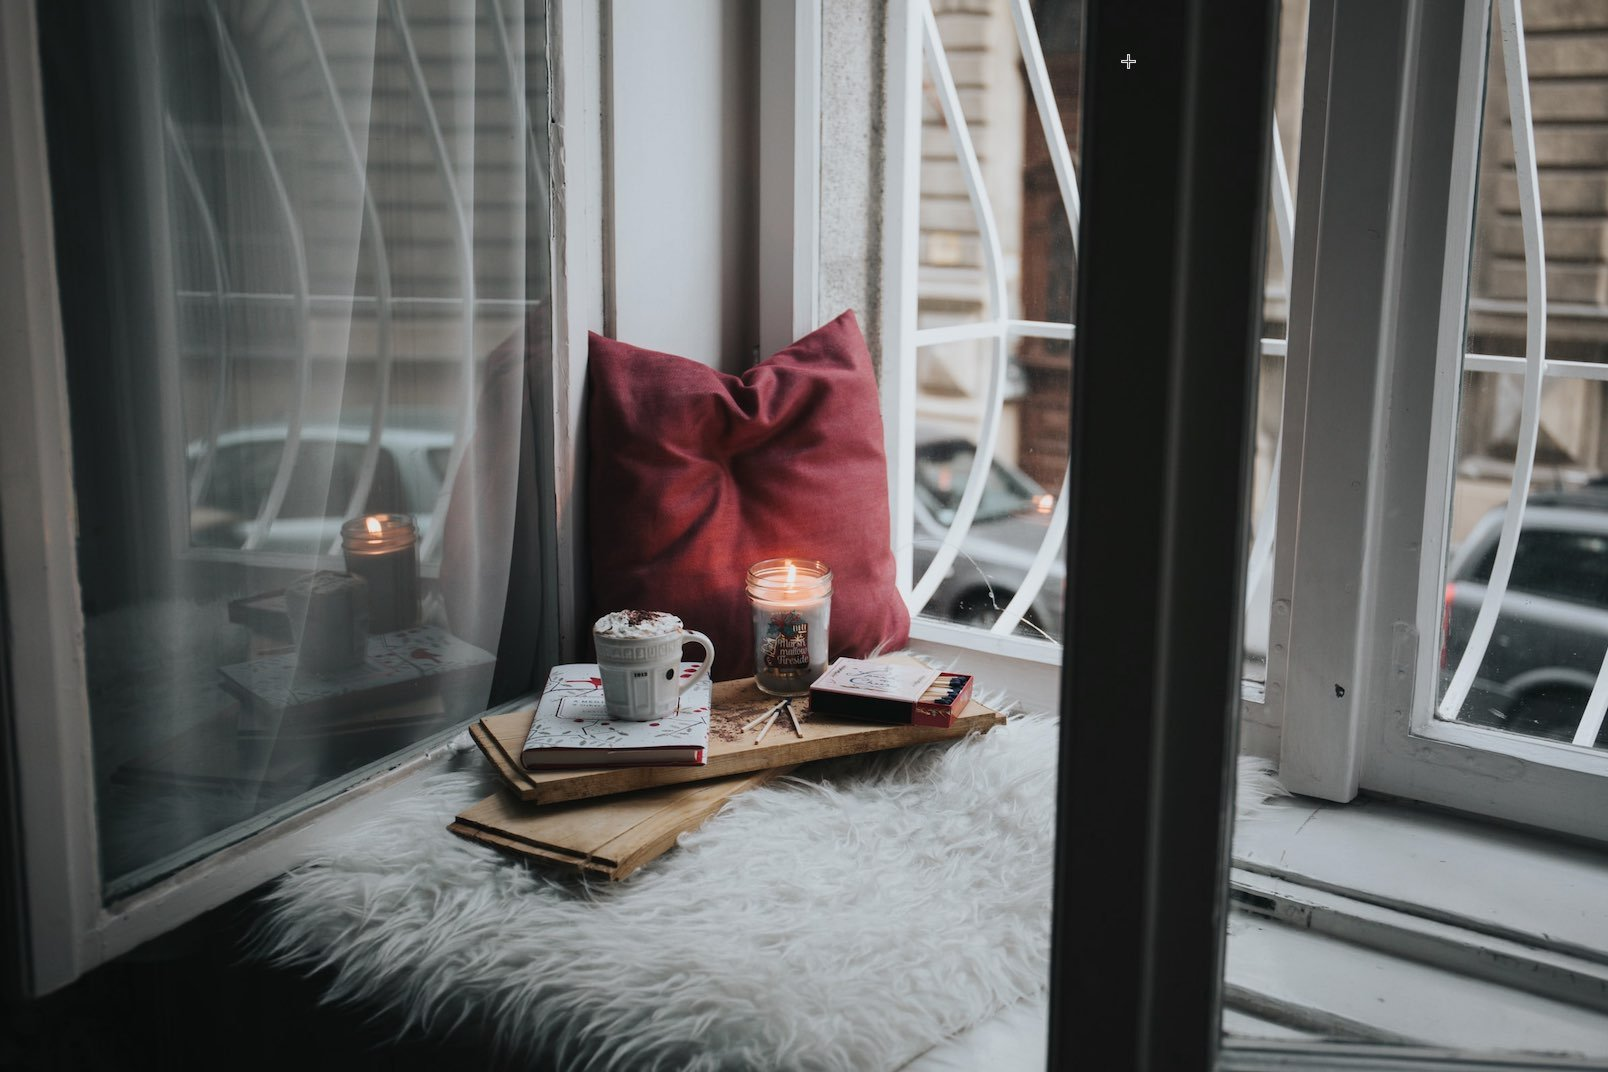 Simple Daily Self-Care Routine to Nurture Your Body and Soul